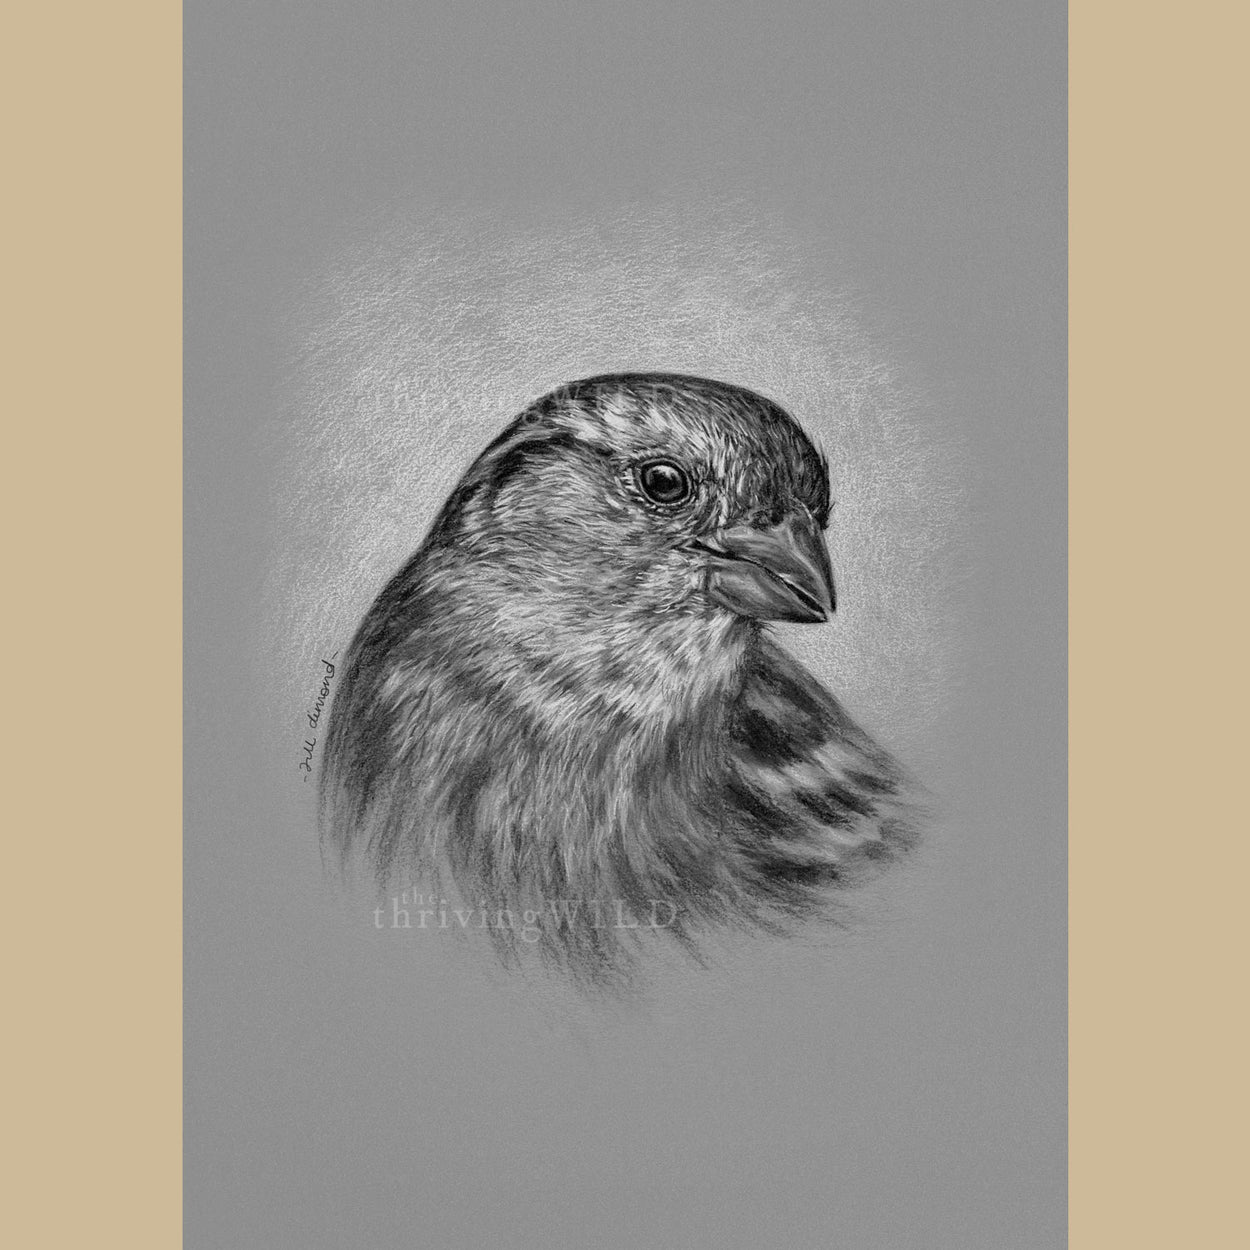 Sparrow Charcoal Drawing - The Thriving Wild - Jill Dimond